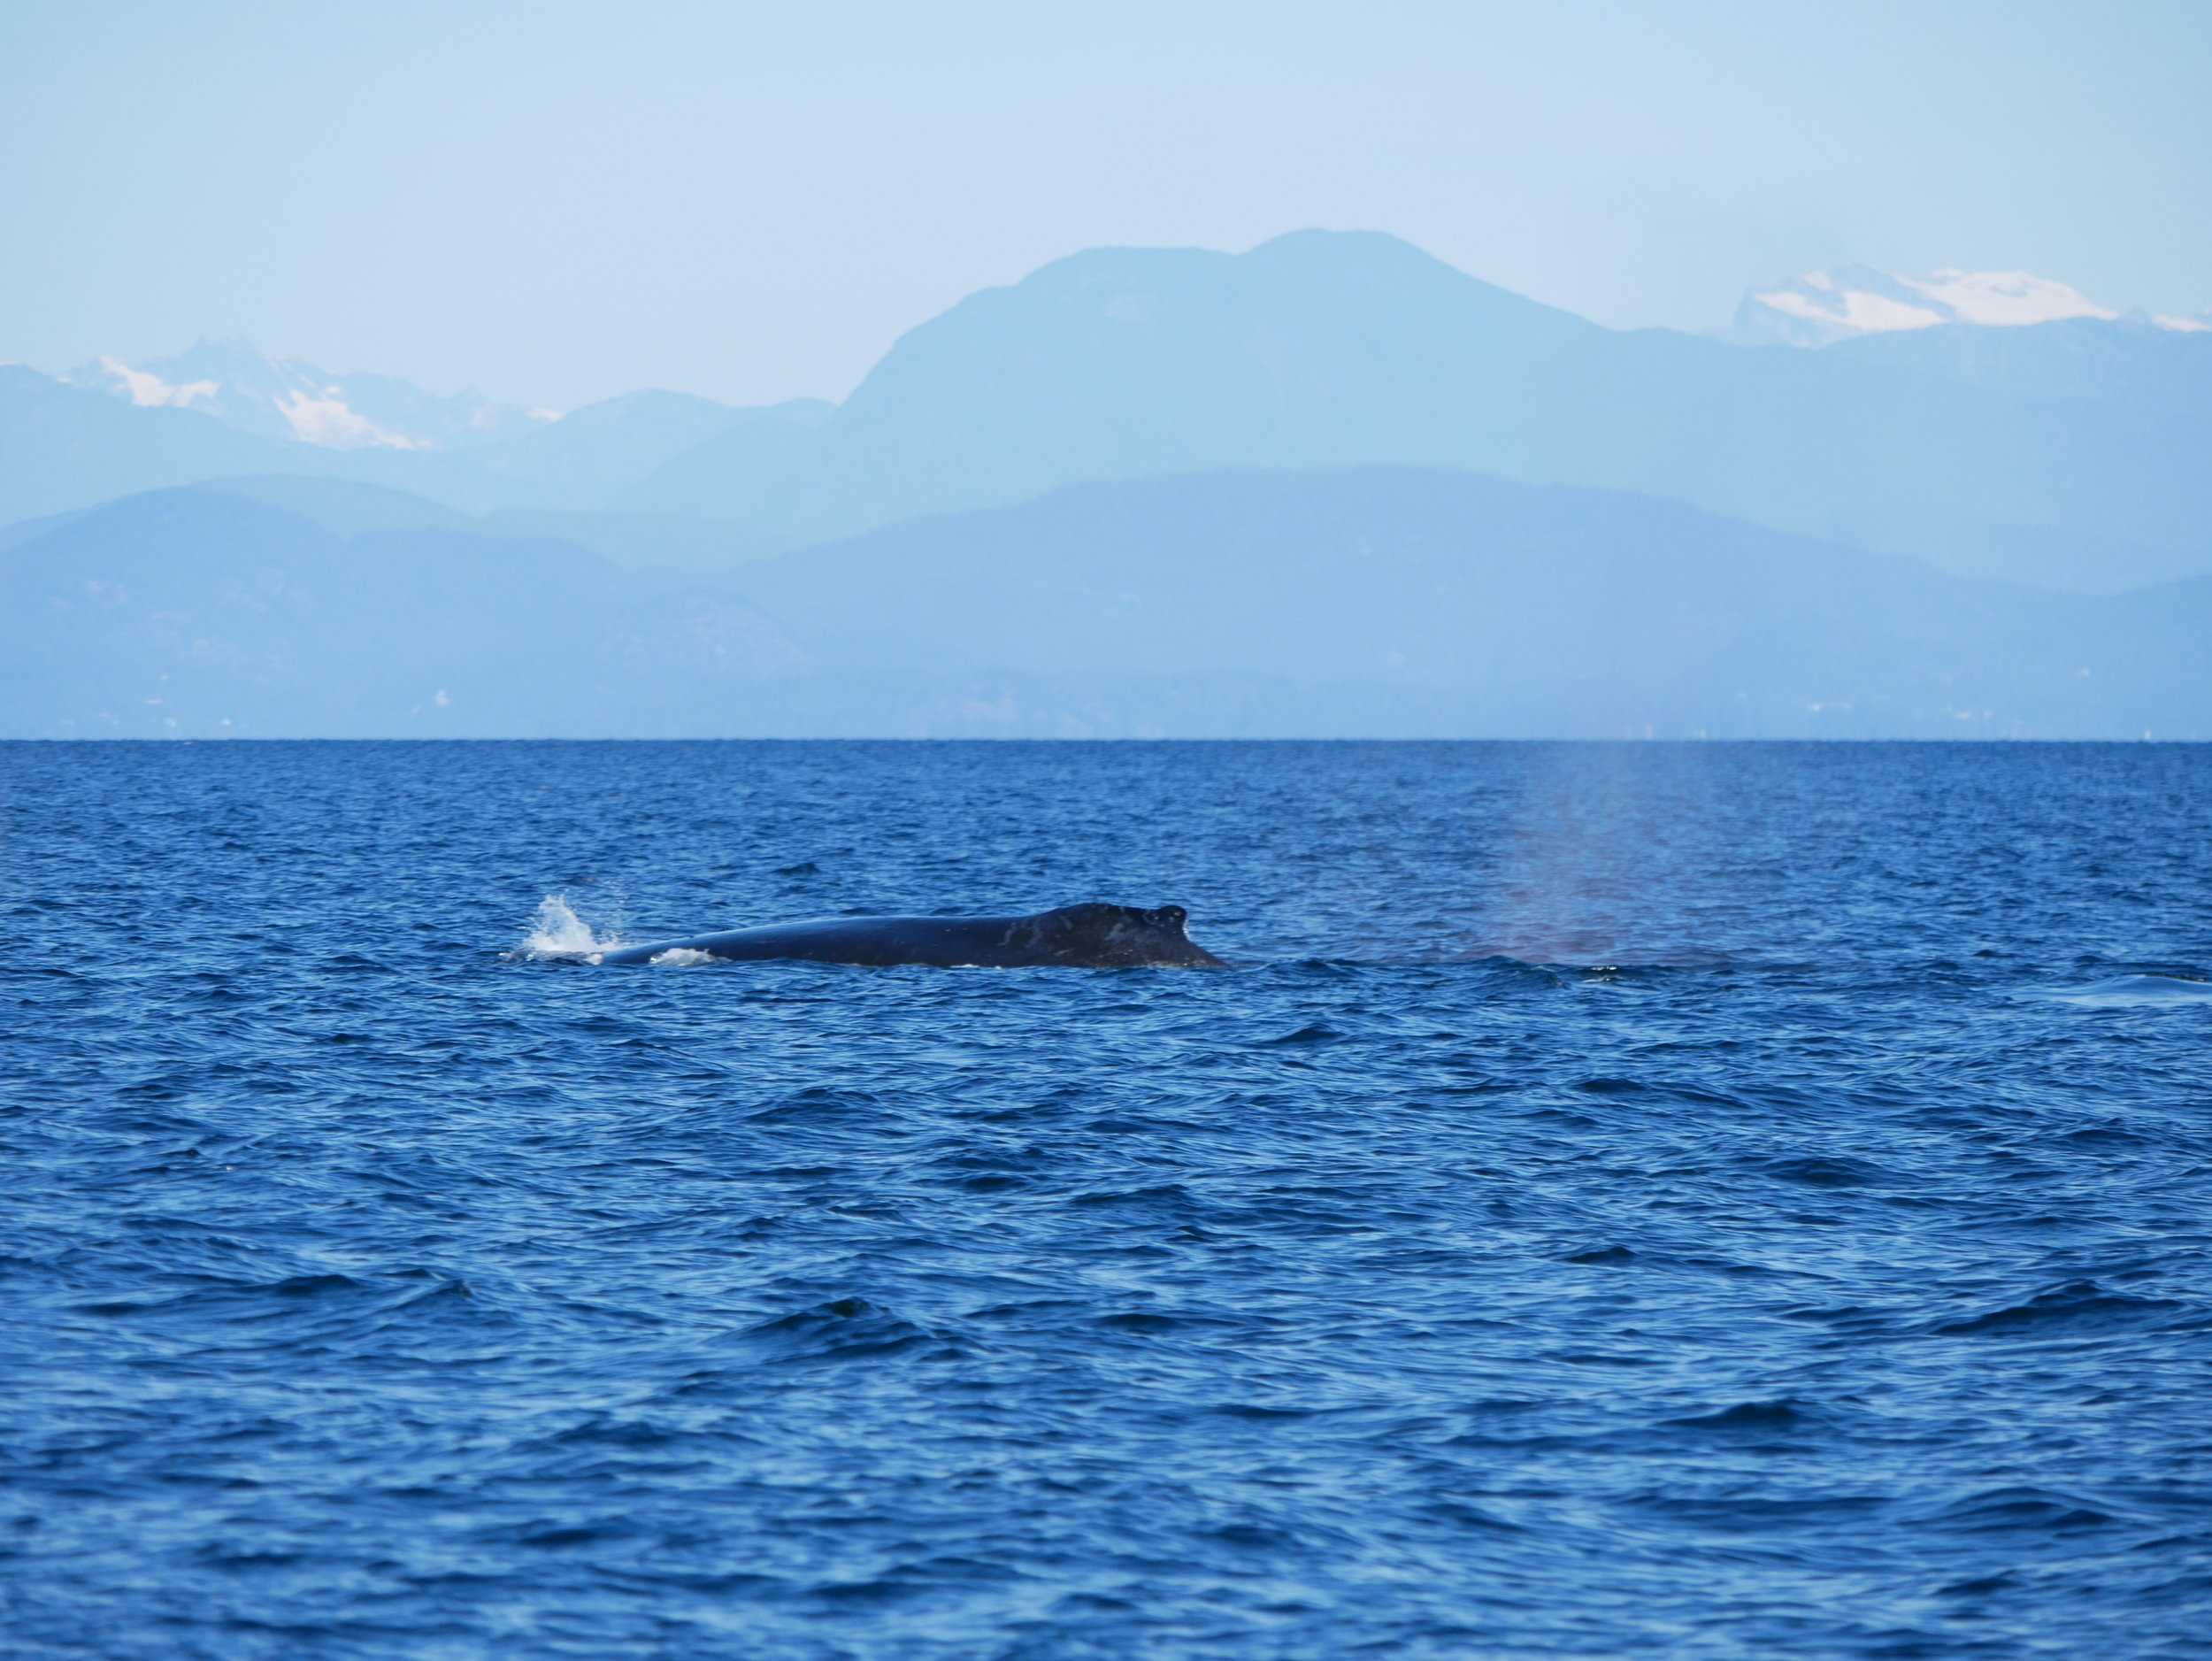 Snow capped mountains and humpback whales, what a great afternoon! Photo by Rodrigo Menezes